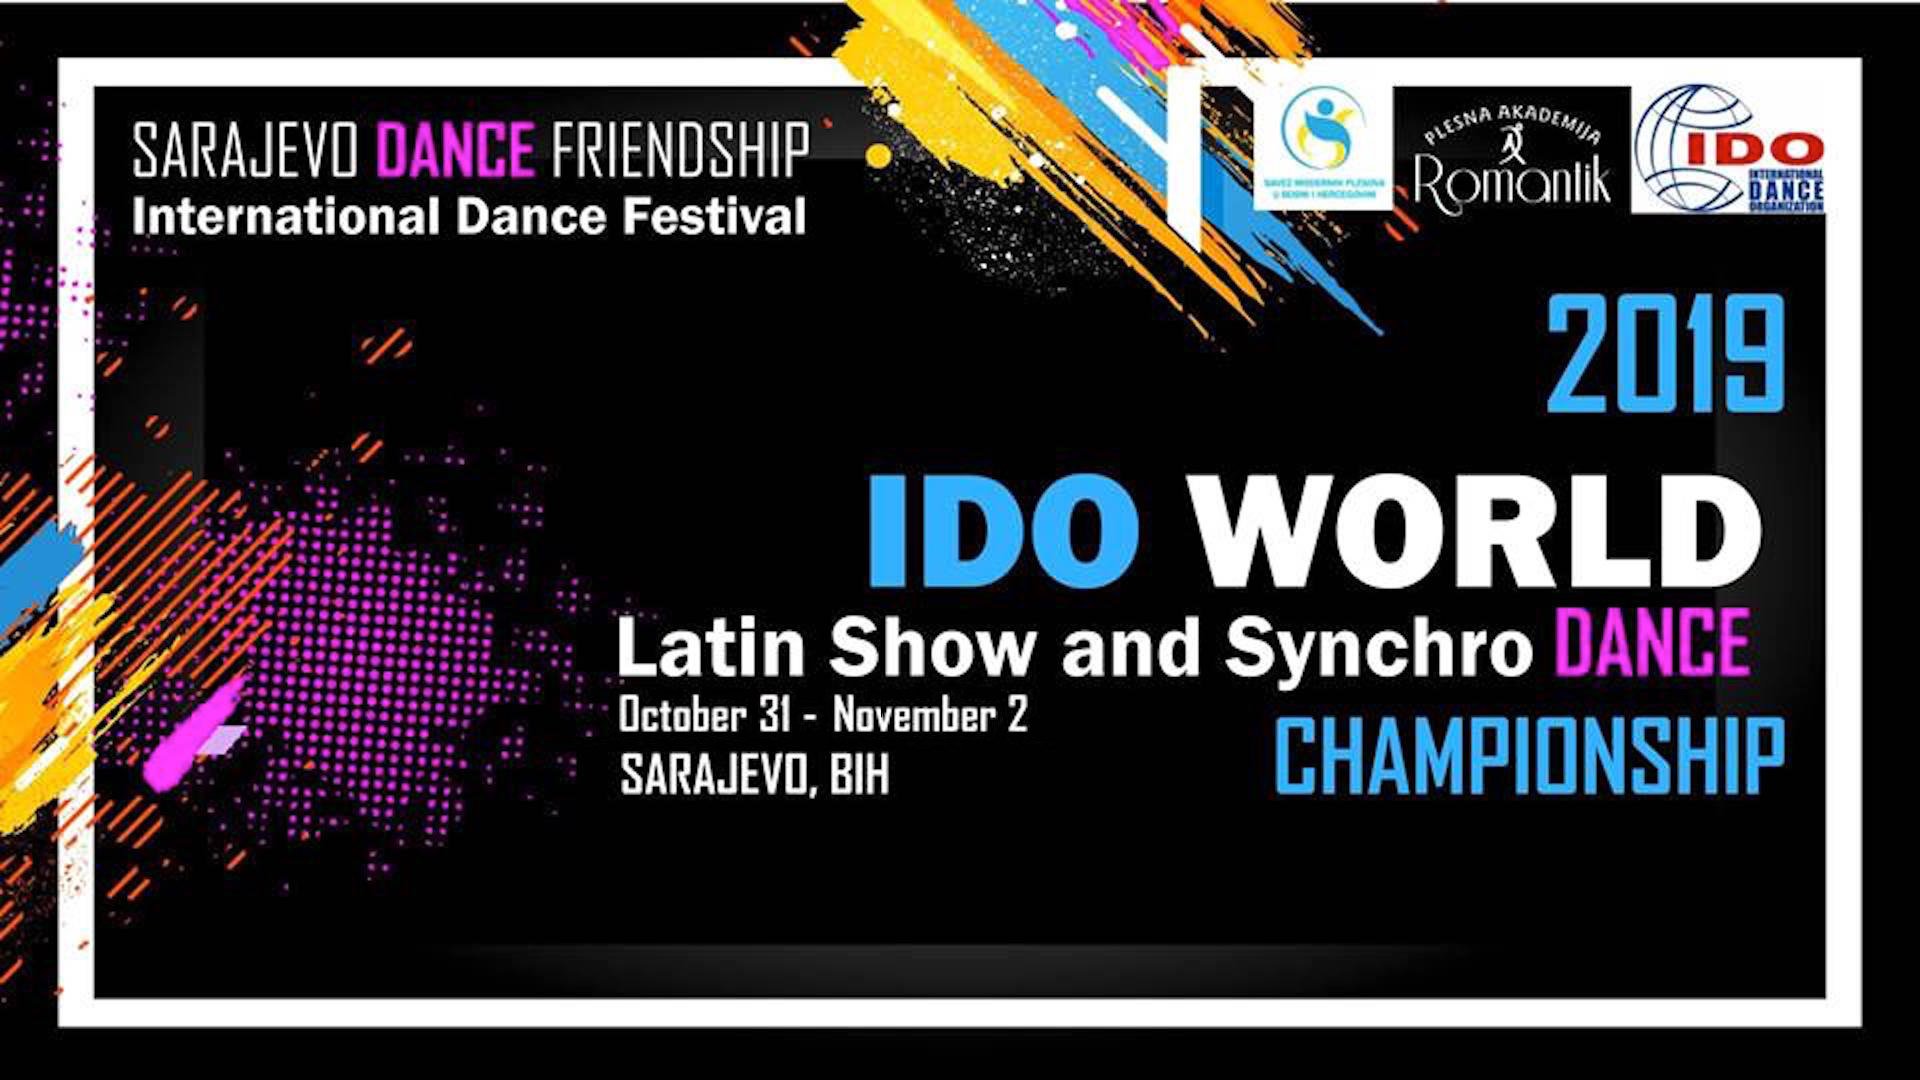 IDO World Latin Show and Sinchro Dance Championship